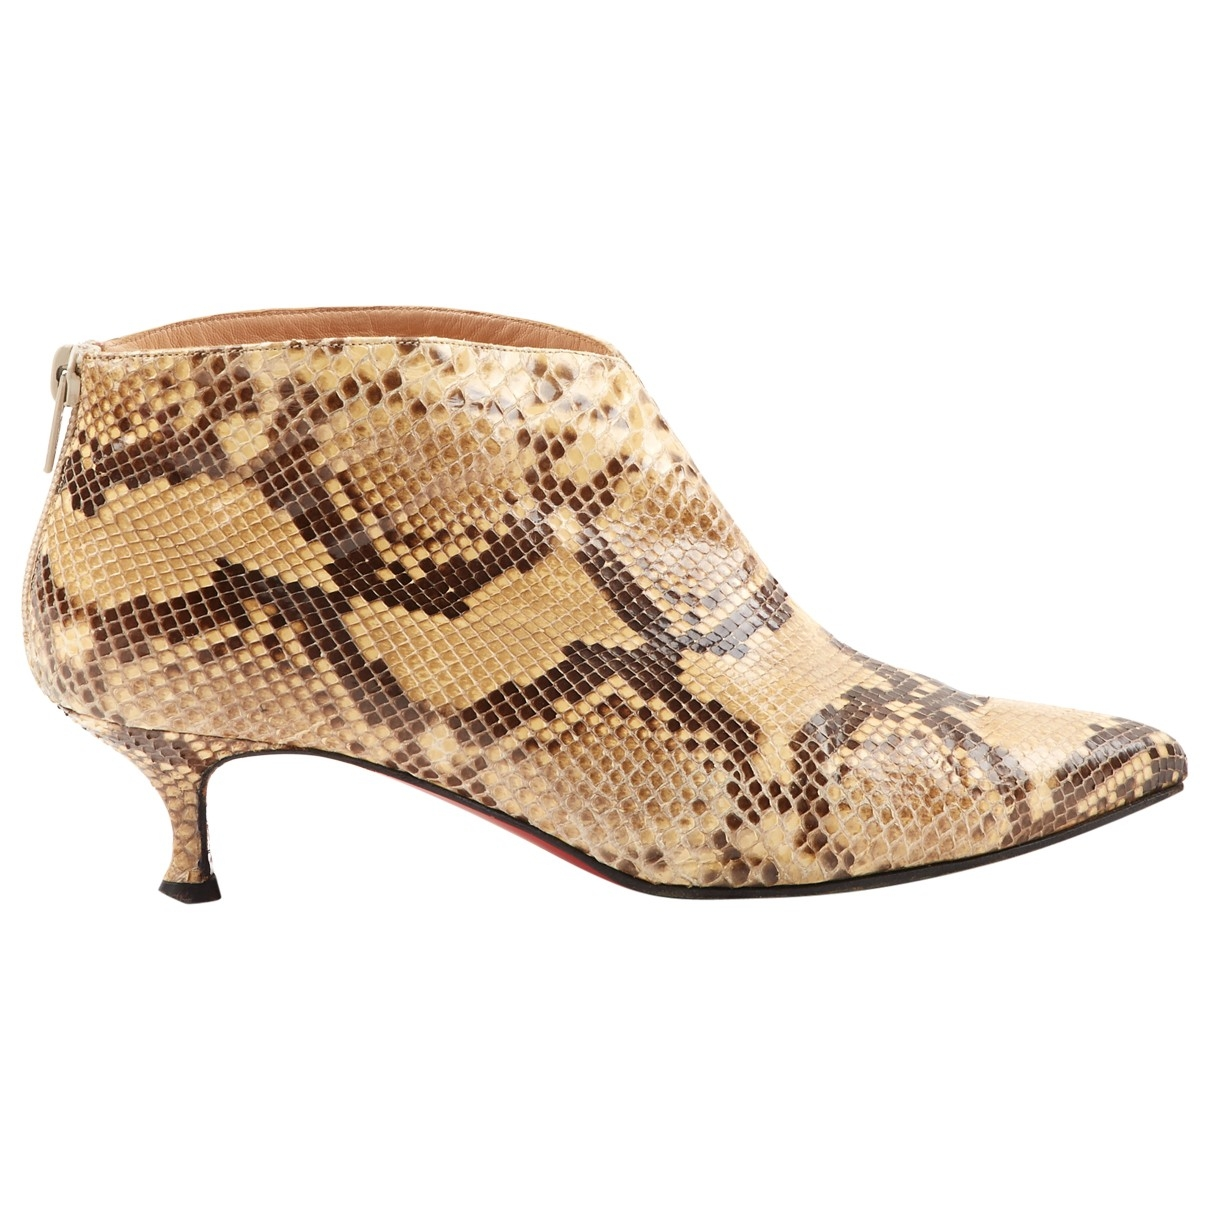 Christian Louboutin \N Beige Python Ankle boots for Women 37.5 EU